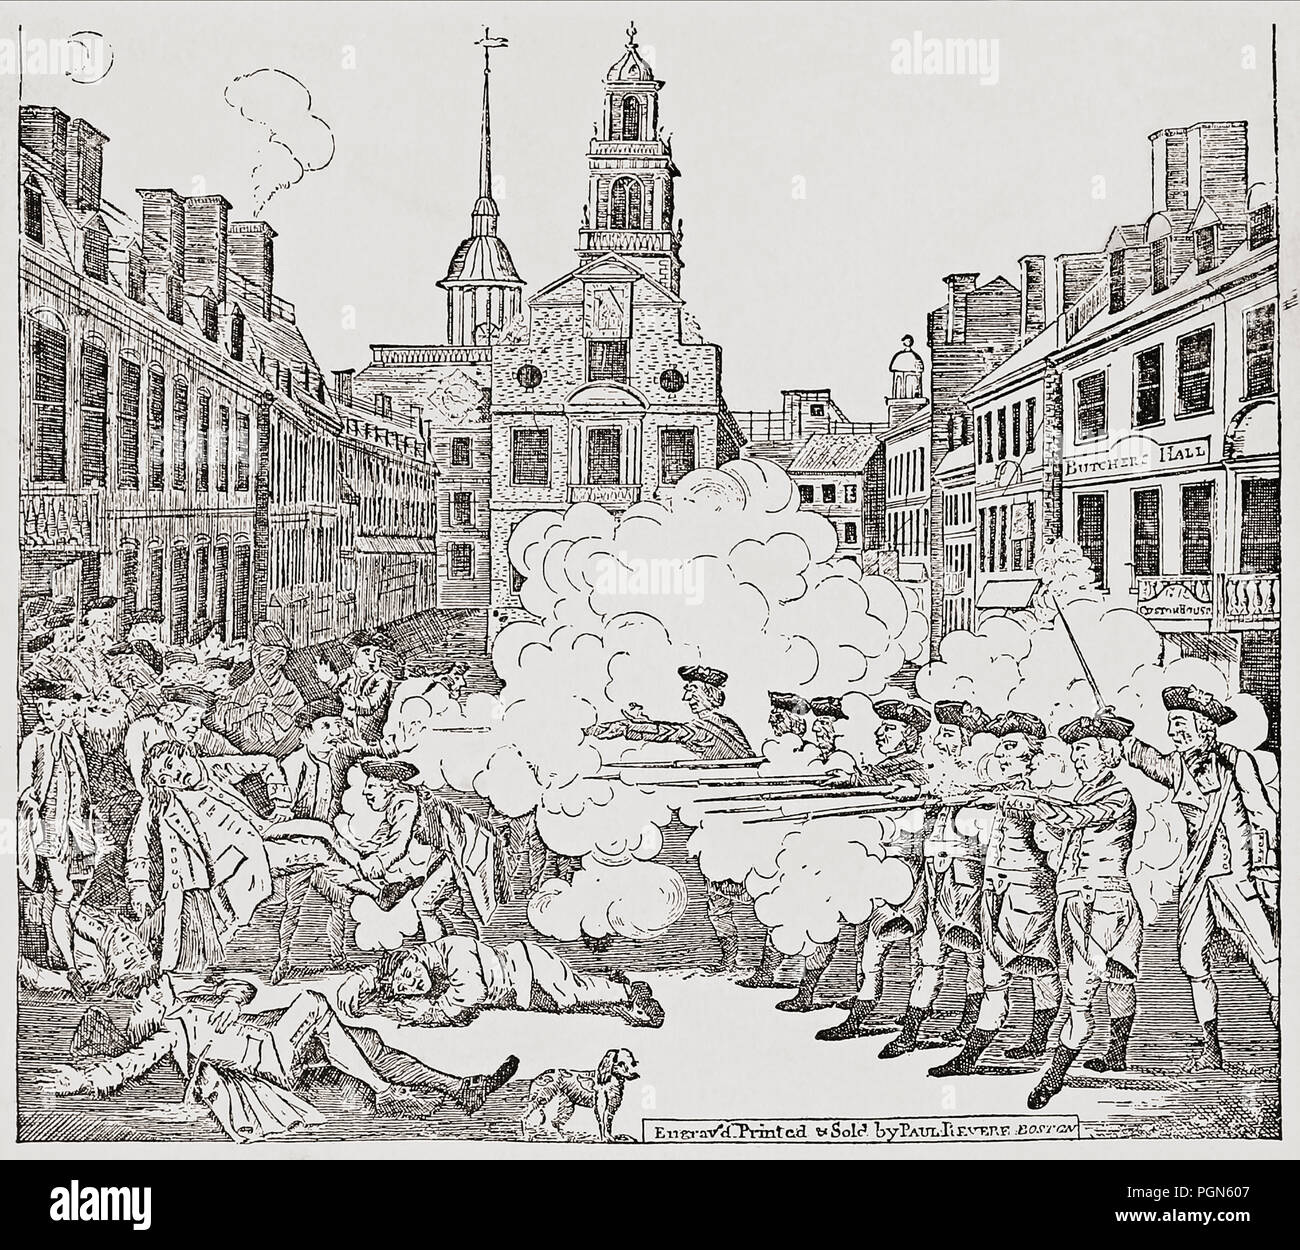 The Boston Massacre, also known as the Incident on King Street, March 5, 1770, when British soldiers shot several civilians. The incident was one catalyst which helped turn colonial opinion against the British crown and precipitated eventual armed confrontation against British rule during the American Revolution.  After a contemporary engraving by Paul Revere. - Stock Image